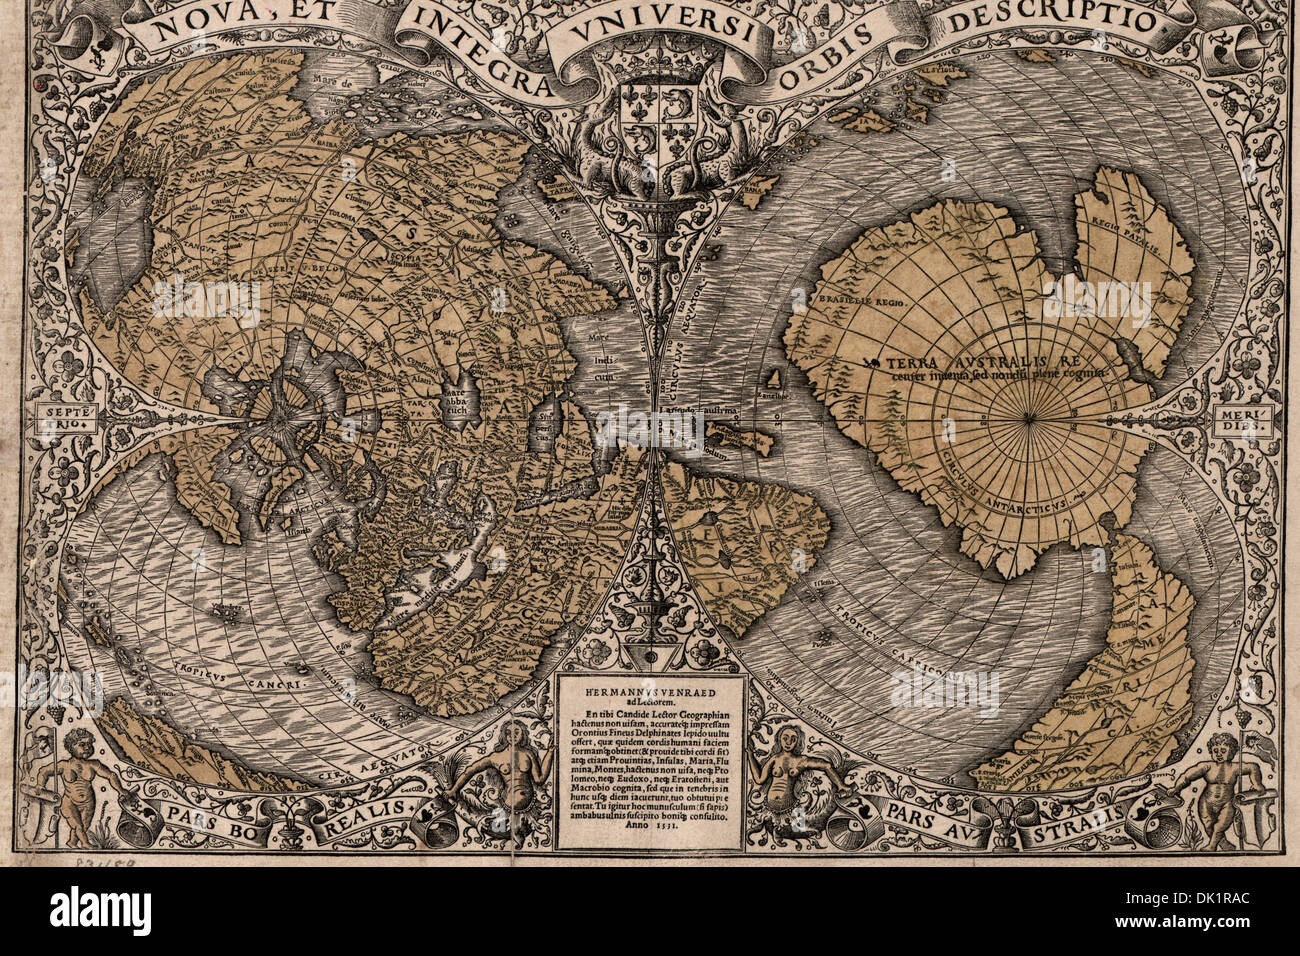 1531 World Map Today's new and integral to the whole world a description of  the new and complete all of the 1531 census The nova, and integral to the  whole ...